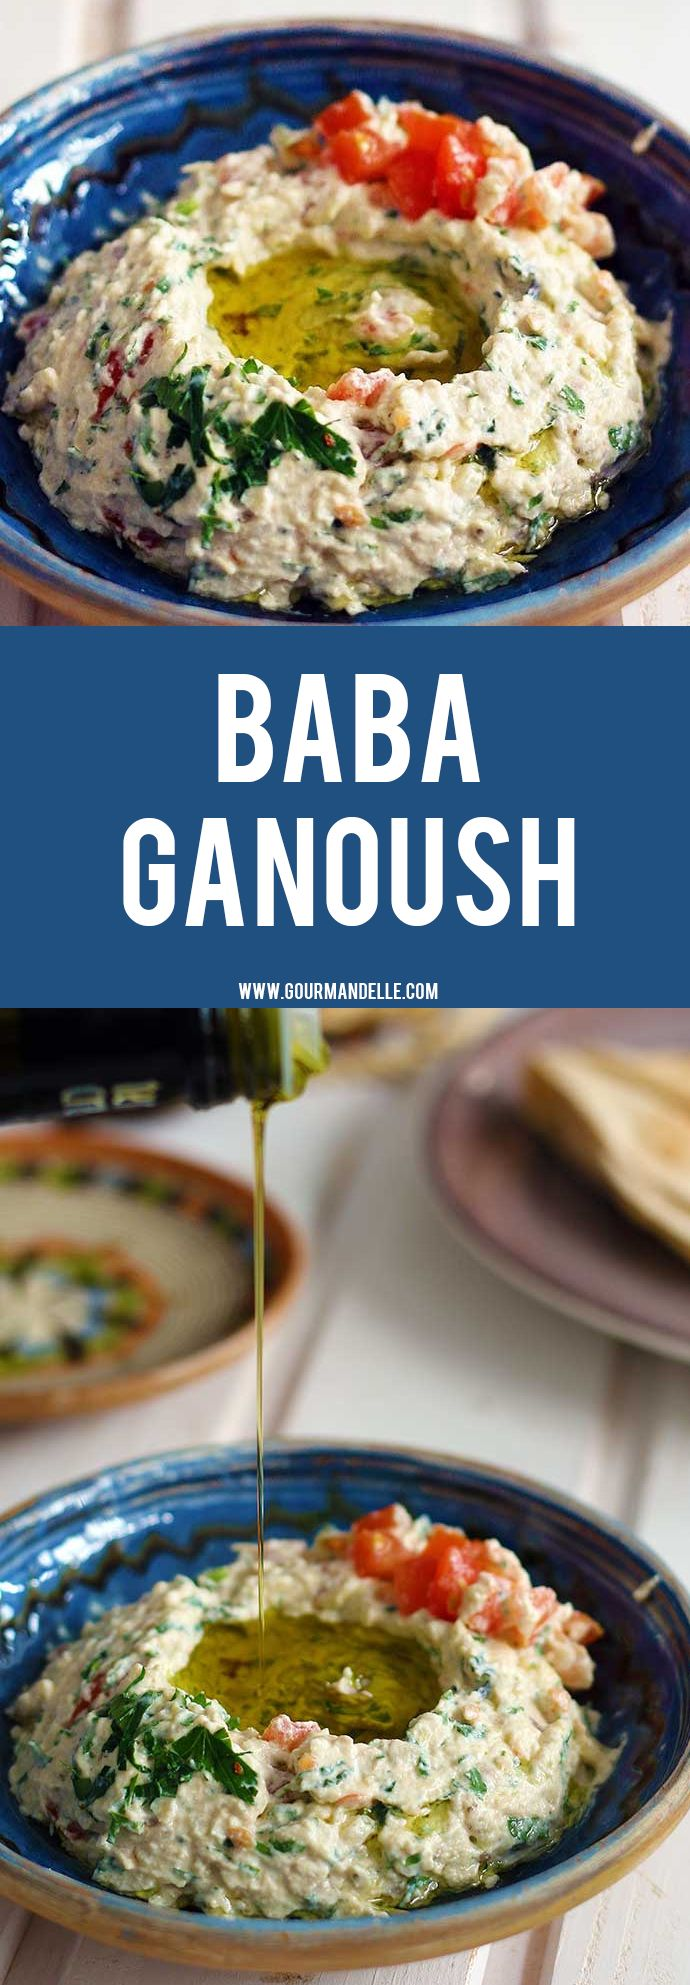 Learn how to make baba ganoush, the easy way! This delicious, fresh and flavorful Middle Eastern eggplant appetizer will surely become your favorite! #eggplant #dip #appetizer